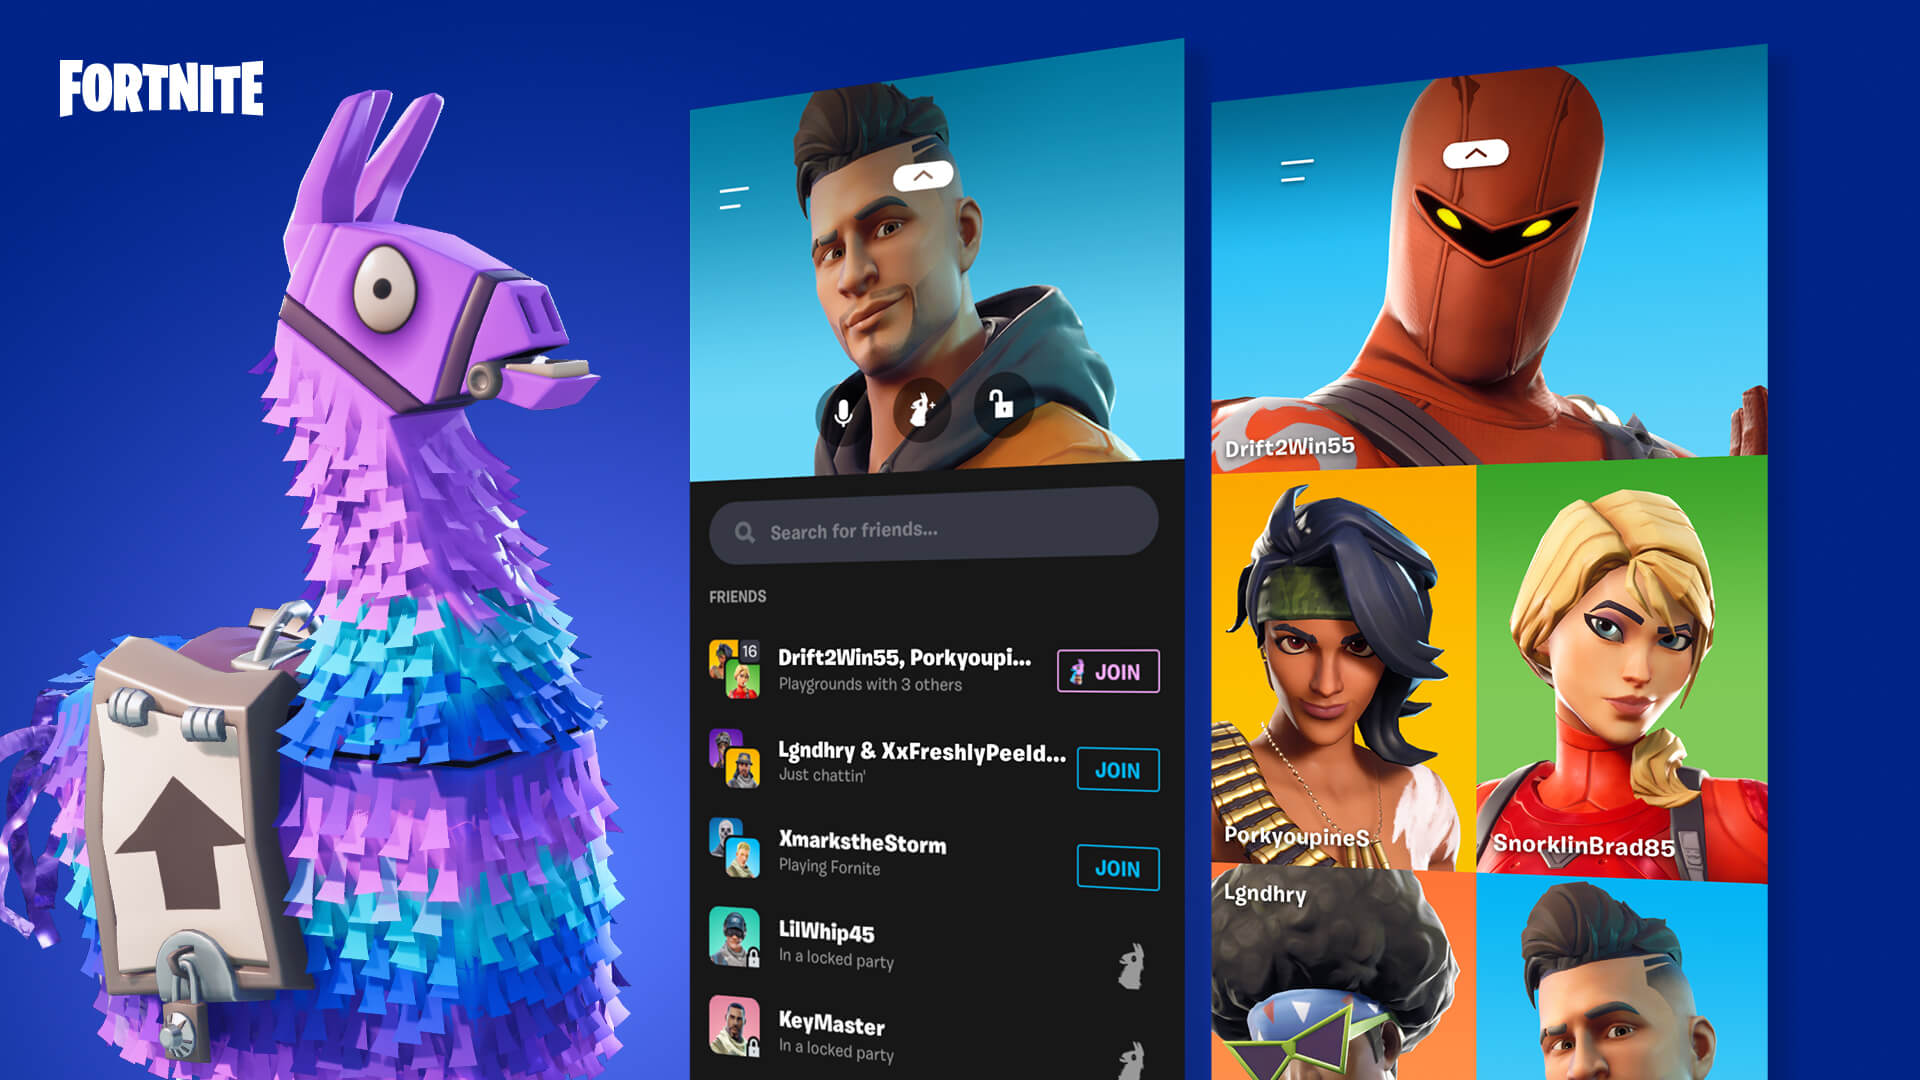 Fortnite_patch-notes_v10-31-patch-notes_br-header-v10-31-patch-notes_10BR_PartyHub_Social-1920...jpg